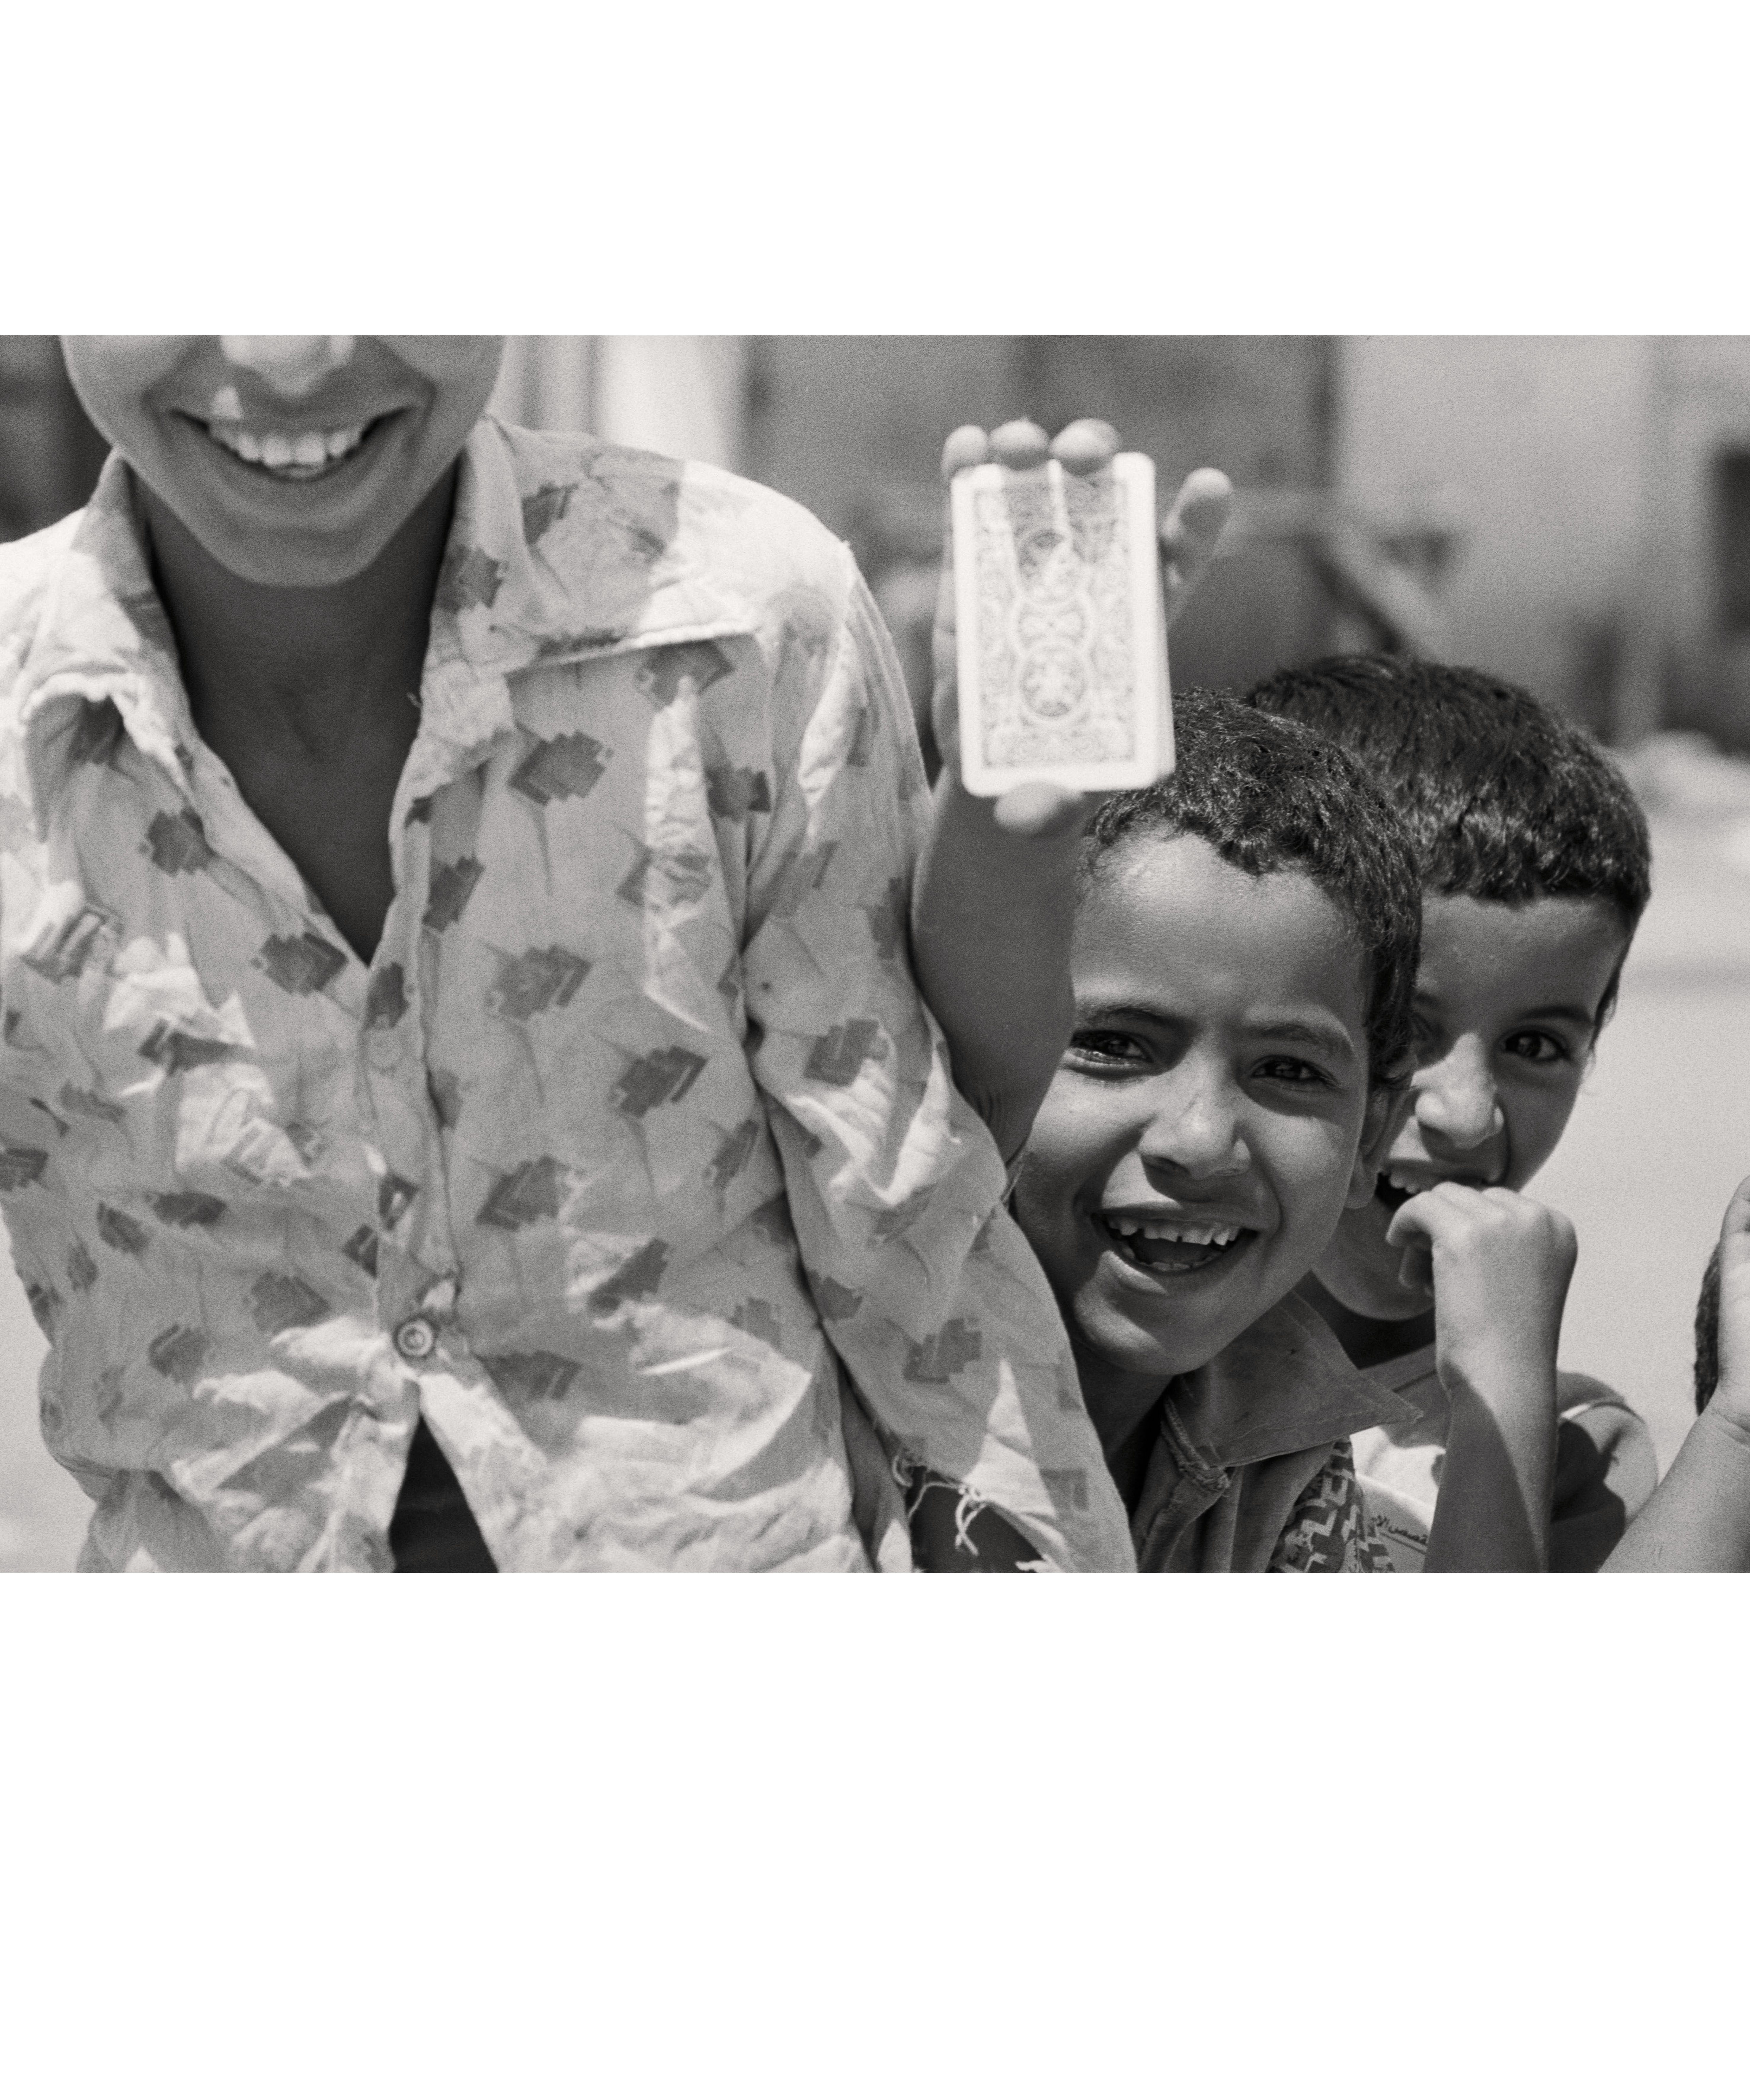 Smiling Palestinian refugee children holding up a pack of cards